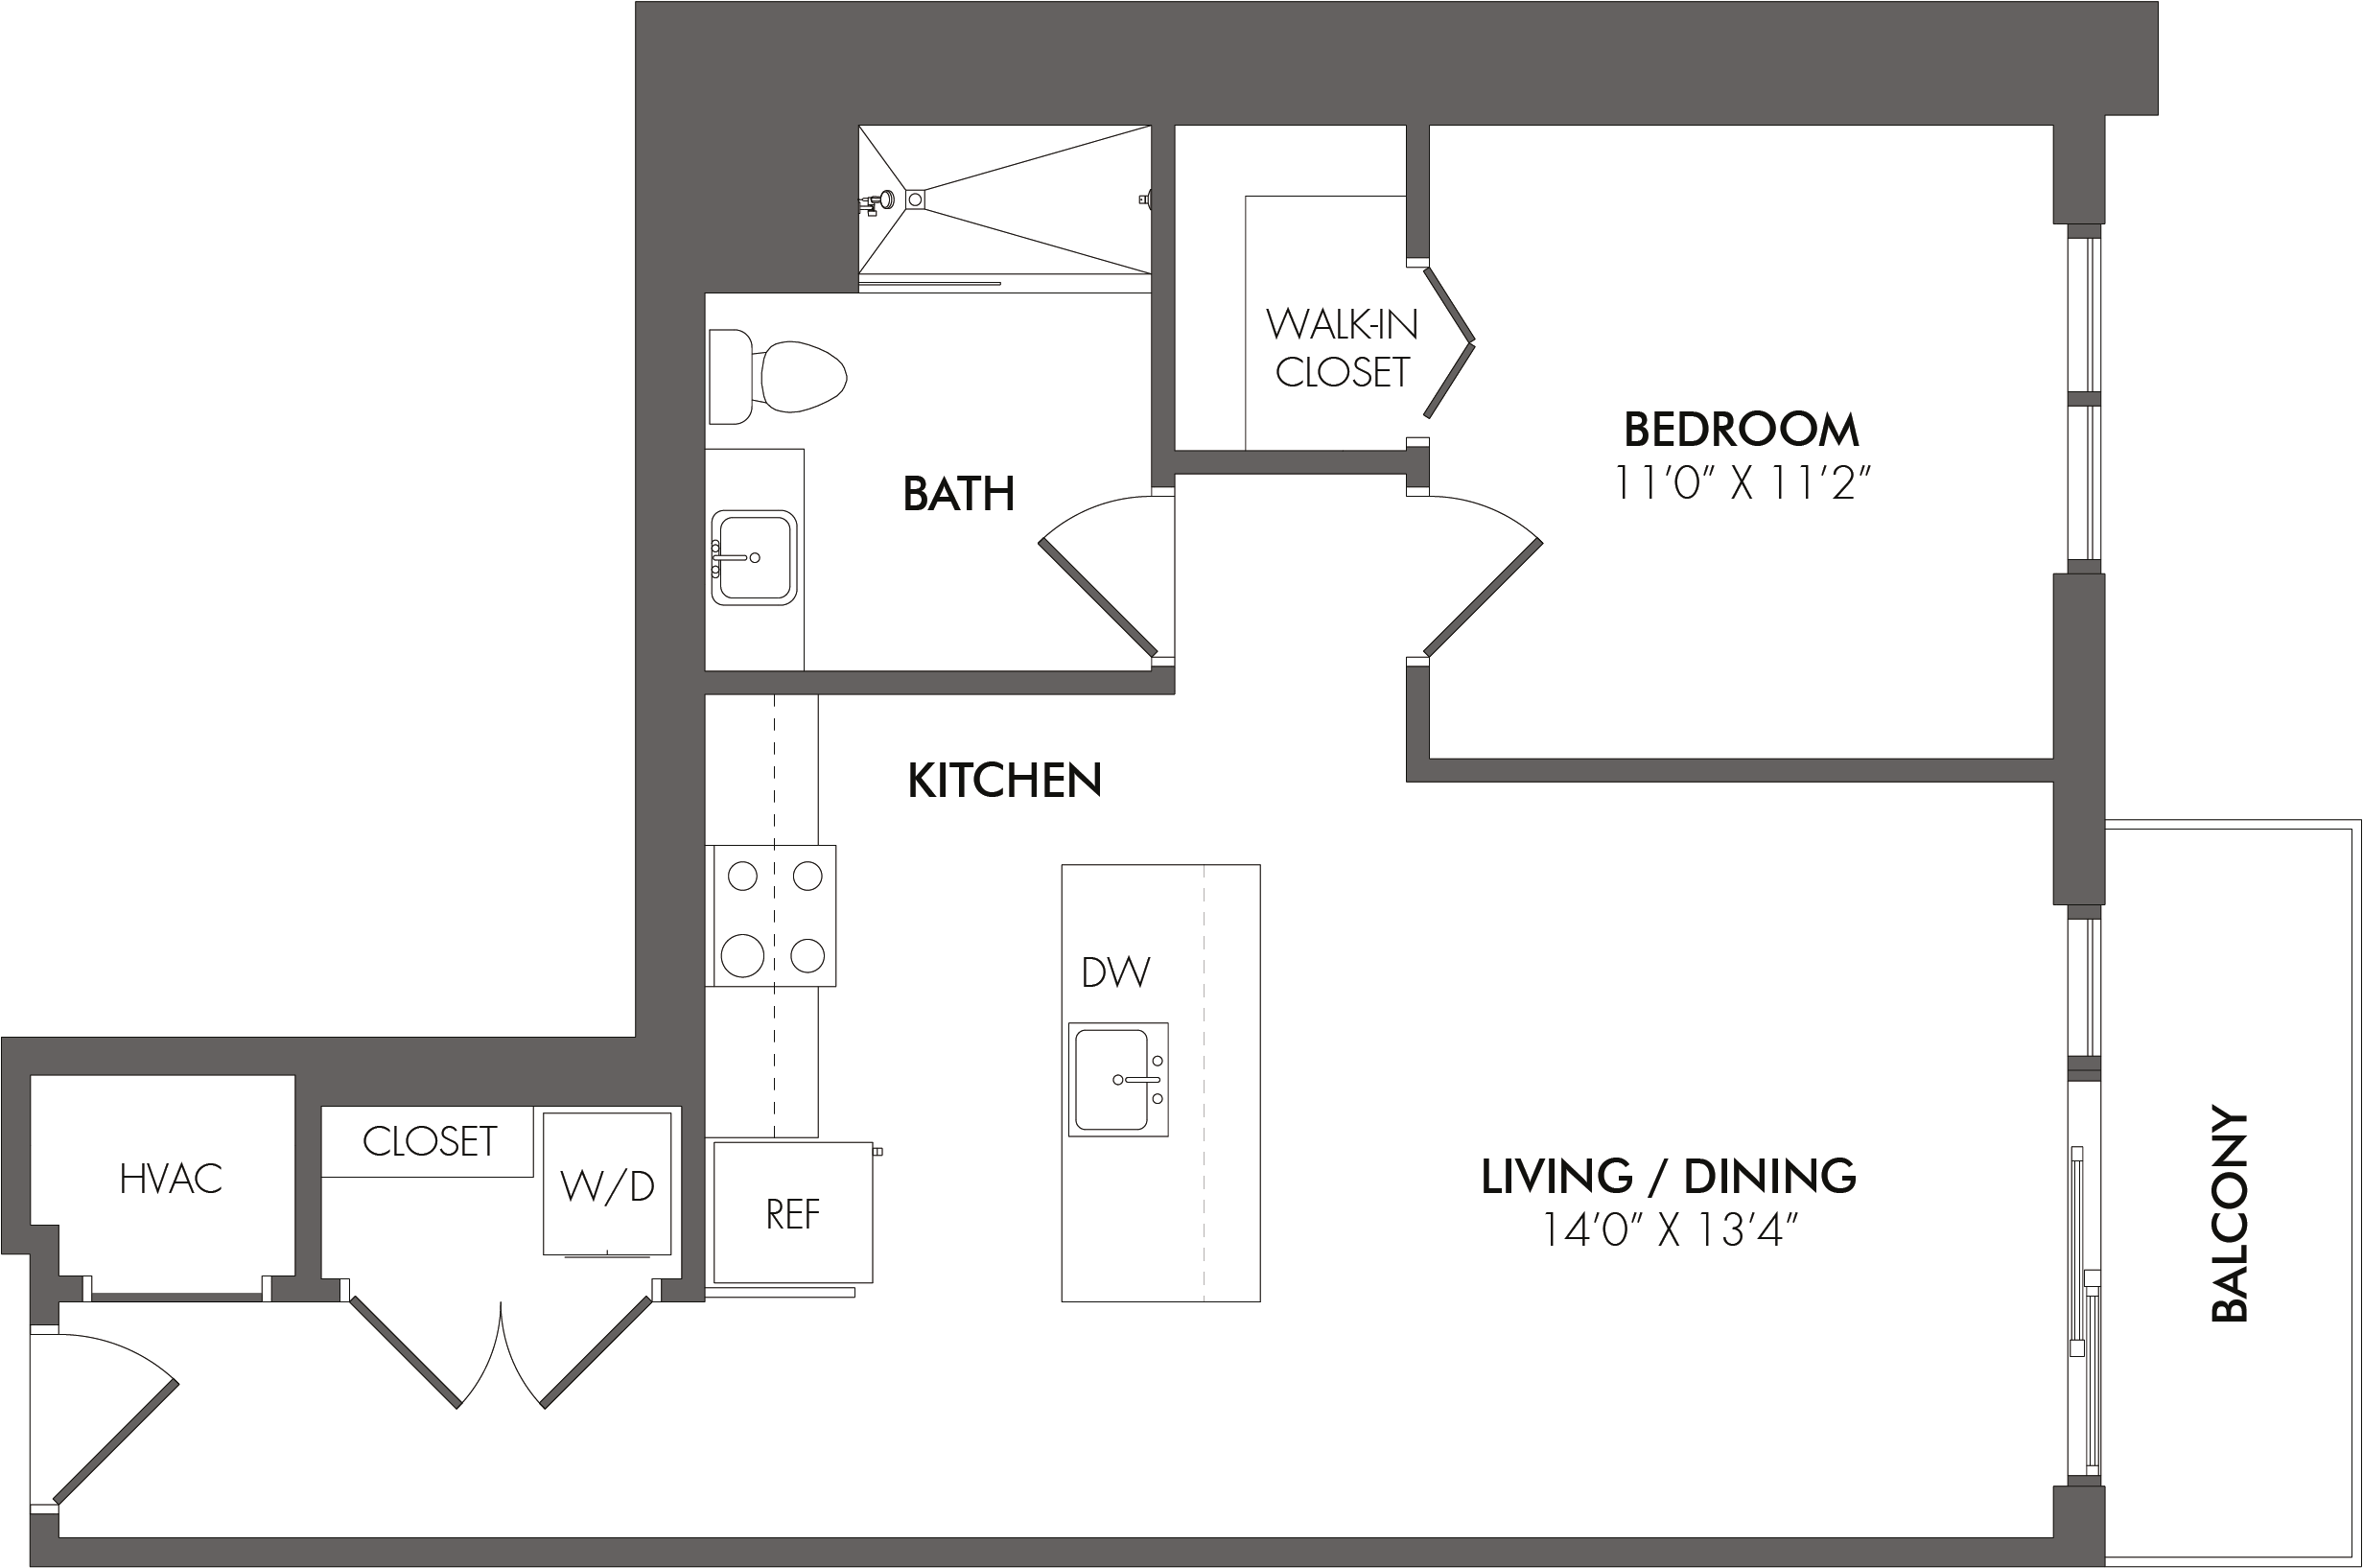 Apartment 2509 floorplan